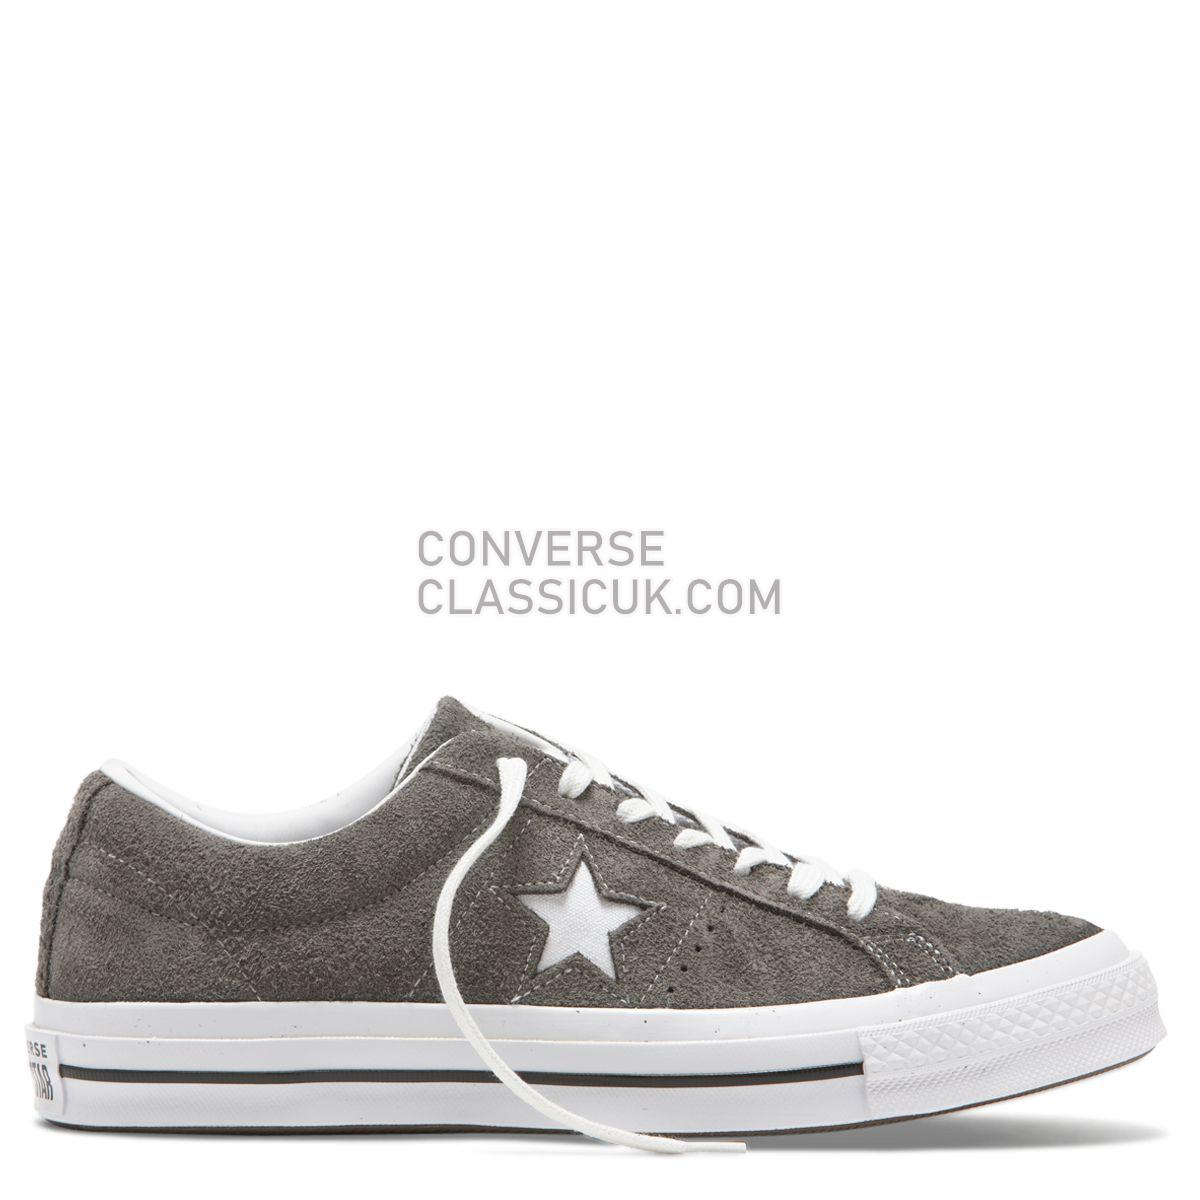 Converse One Star Vintage Suede Low Top Carbon Grey Mens Womens Unisex 165034 Carbon Grey/White/Black Shoes